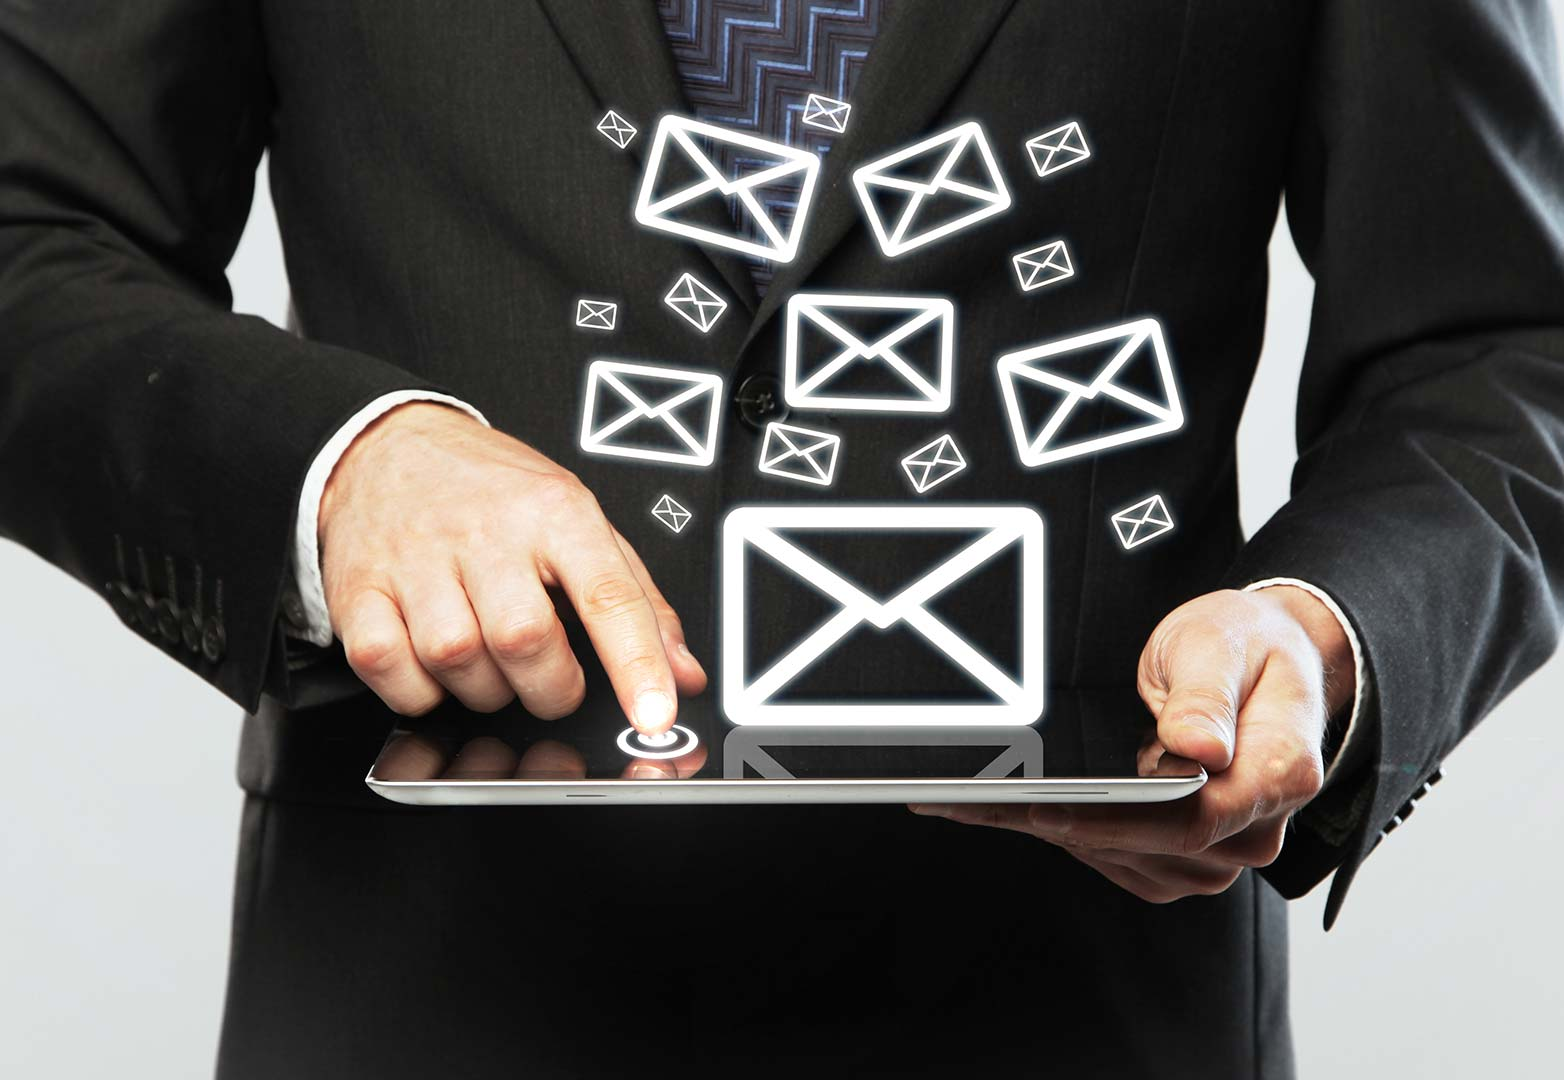 5 Chien dich Email Marketing duoc thuc hien dung cach